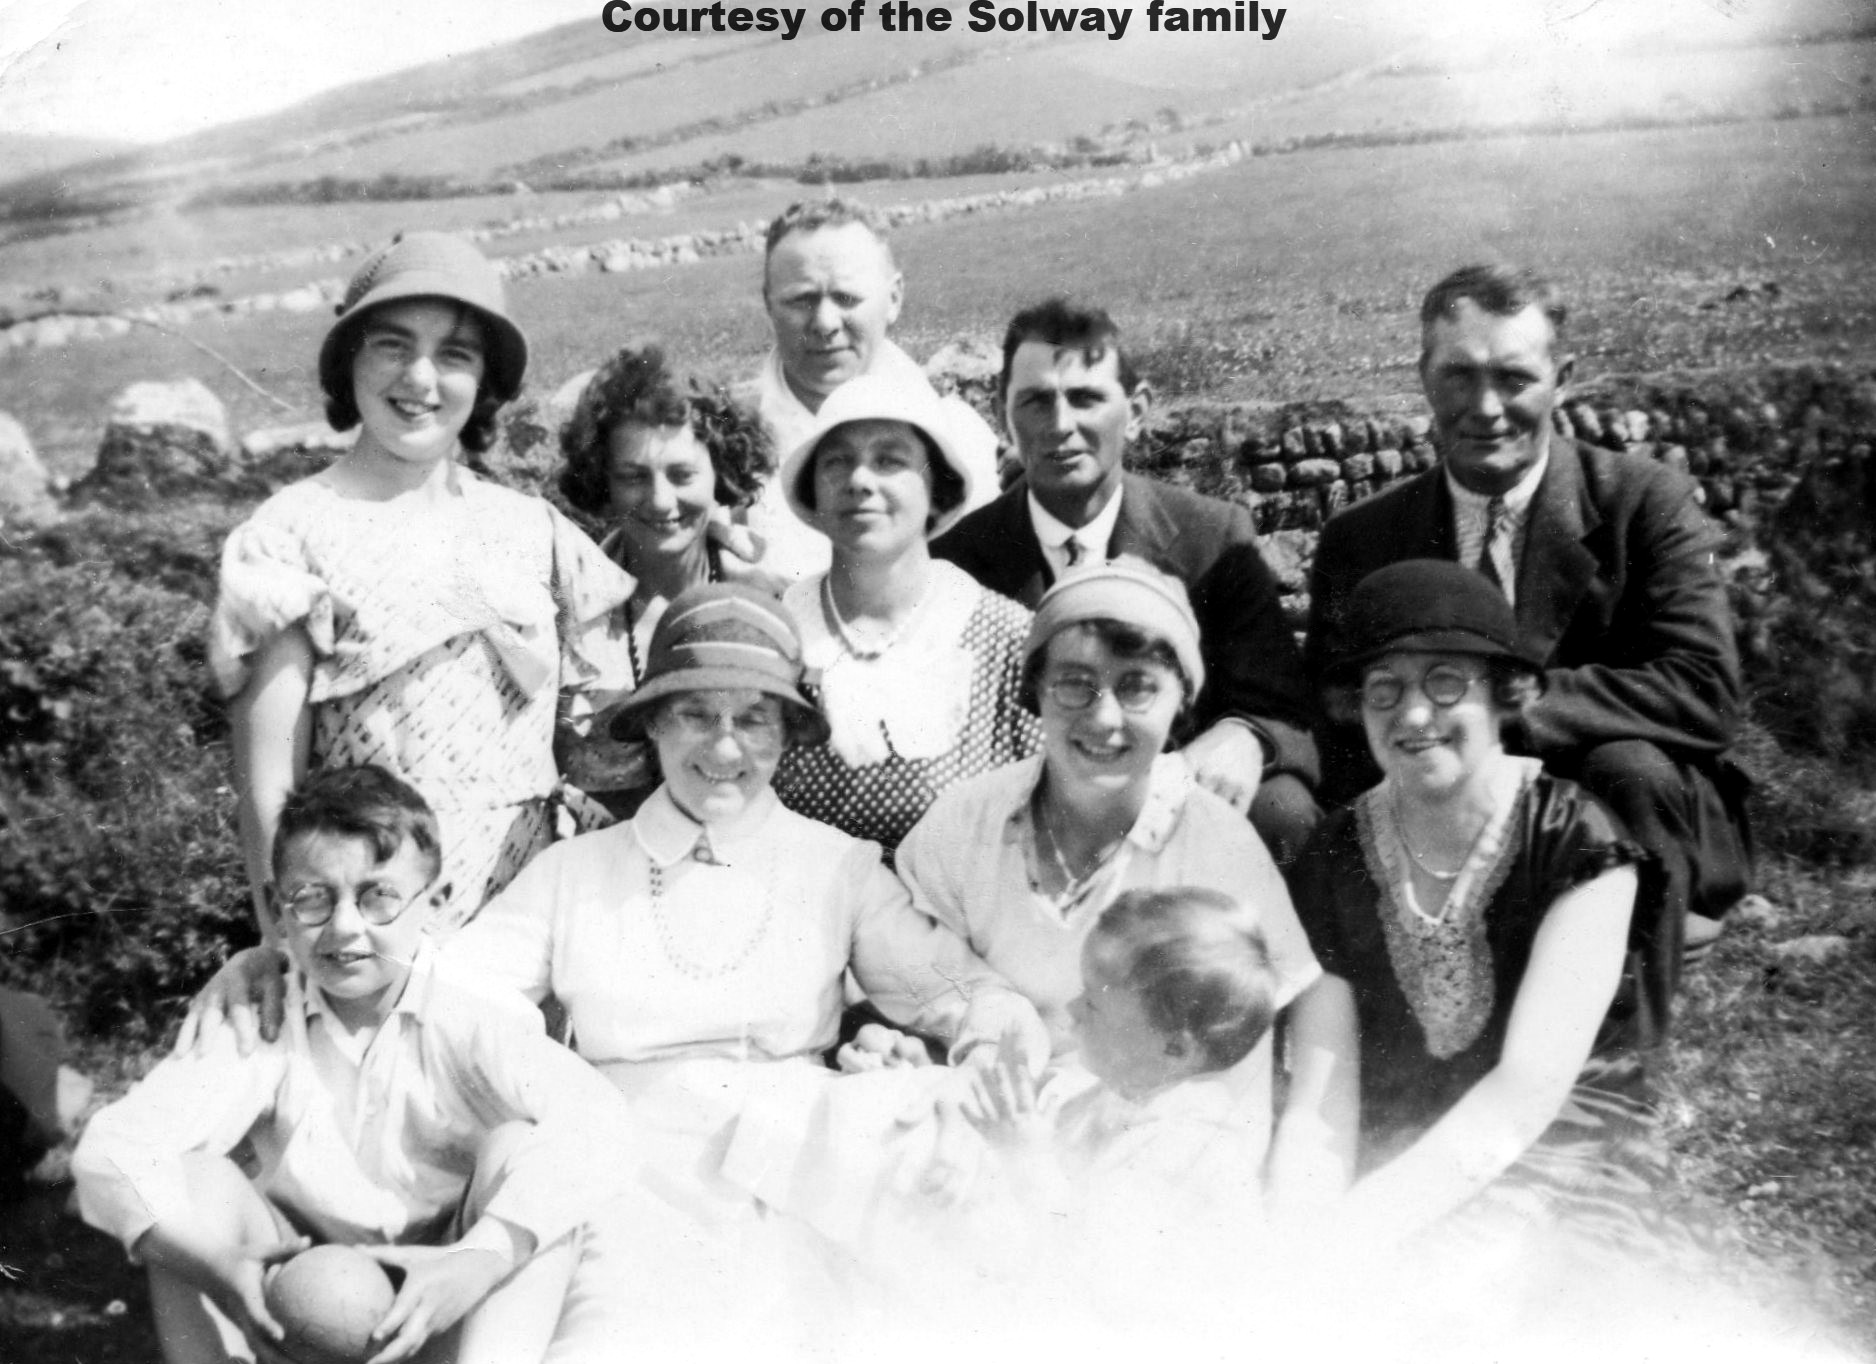 Solway, Pascoe & Rowland family